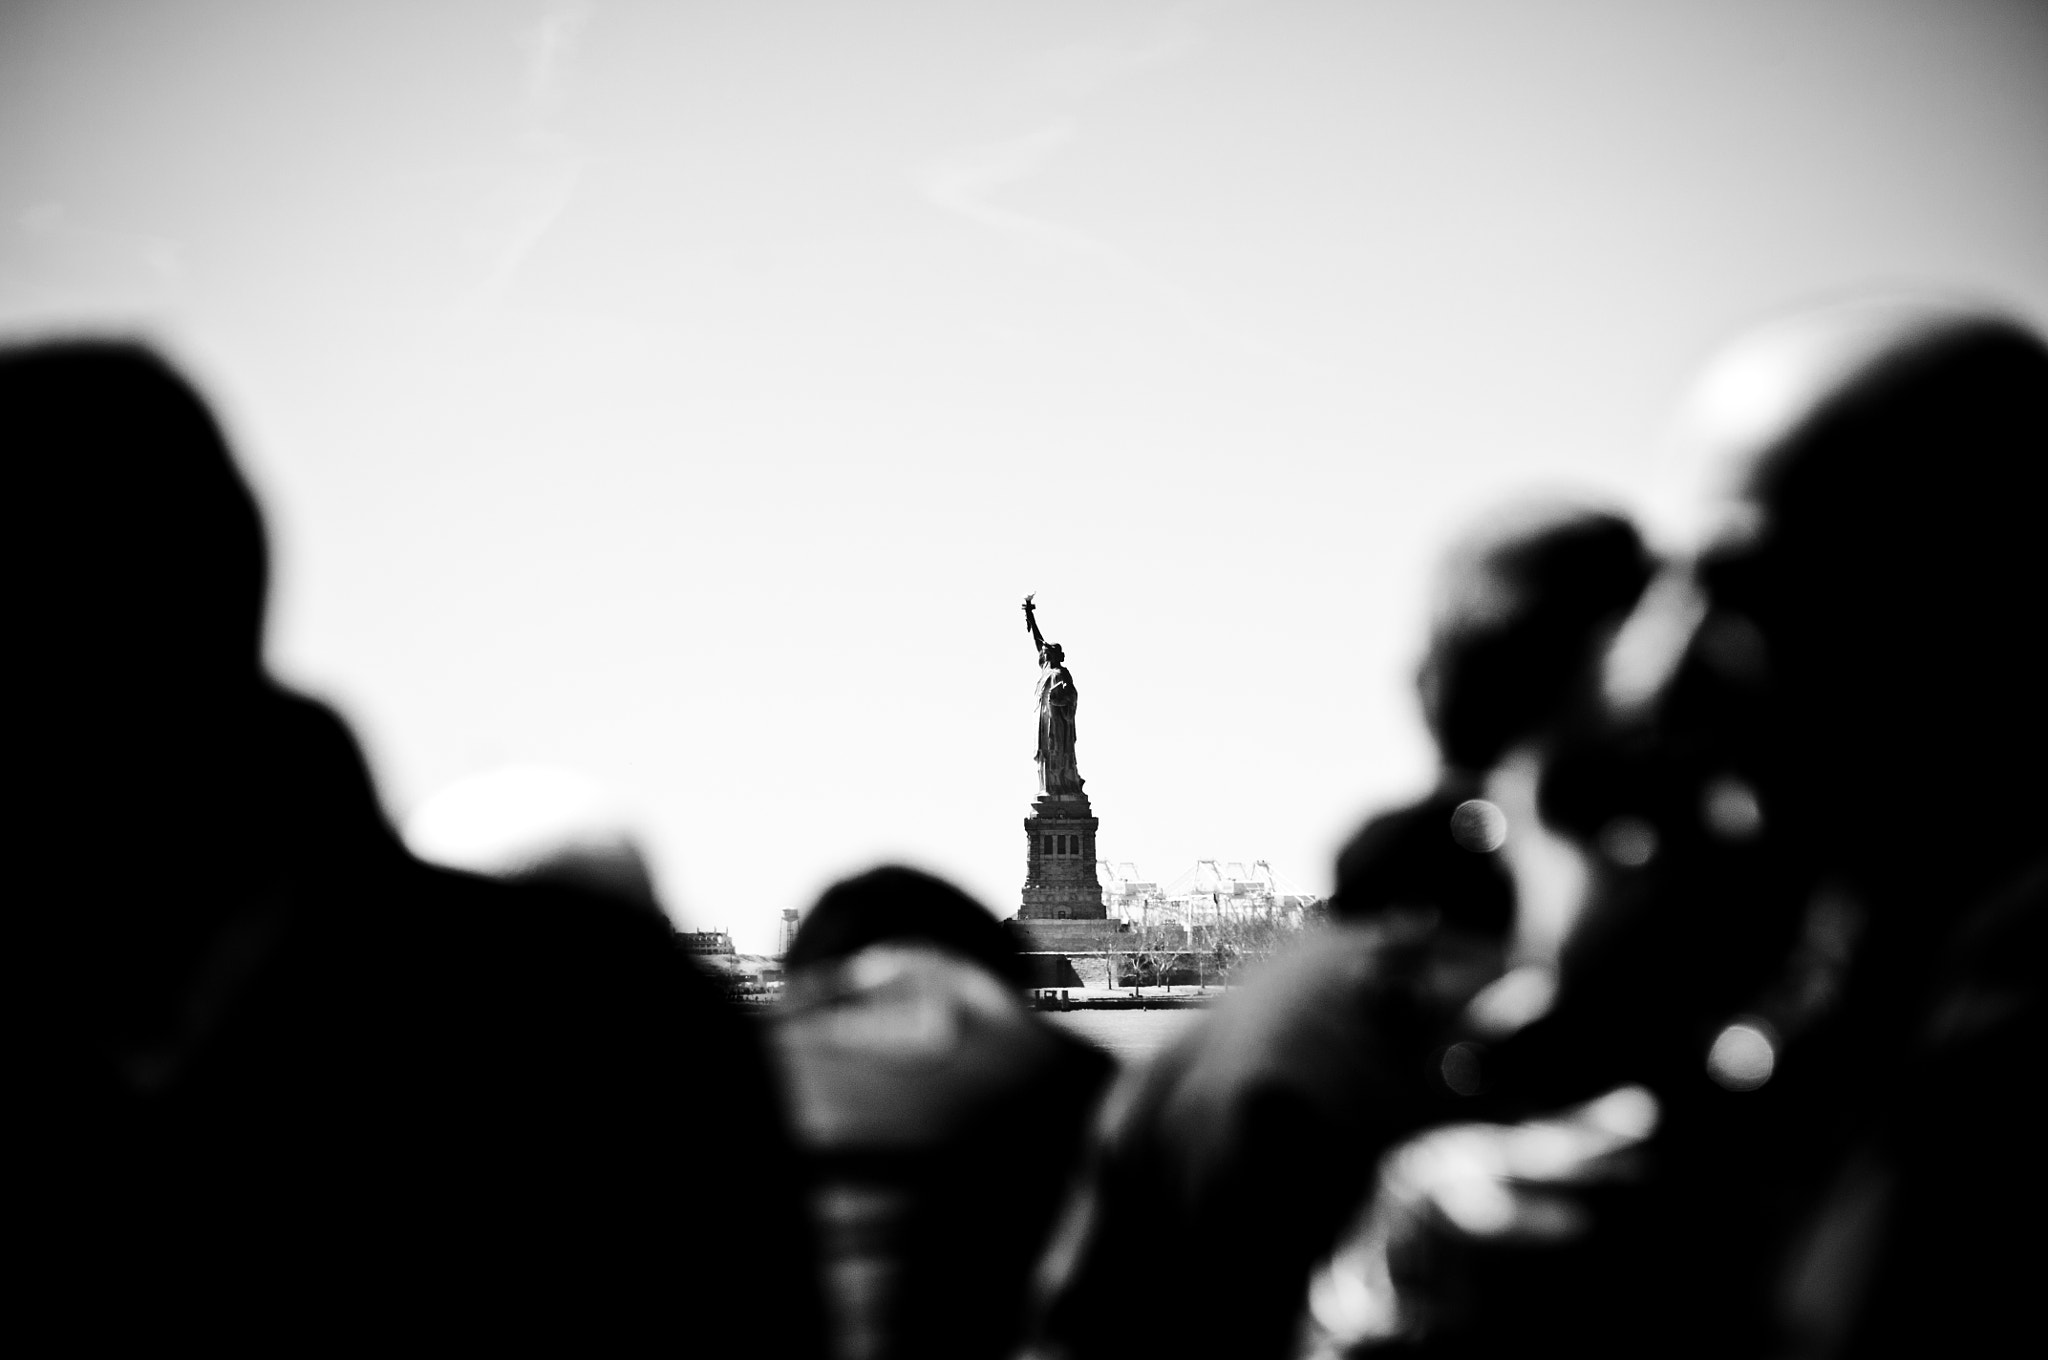 Photograph Liberty Island by mike burch on 500px